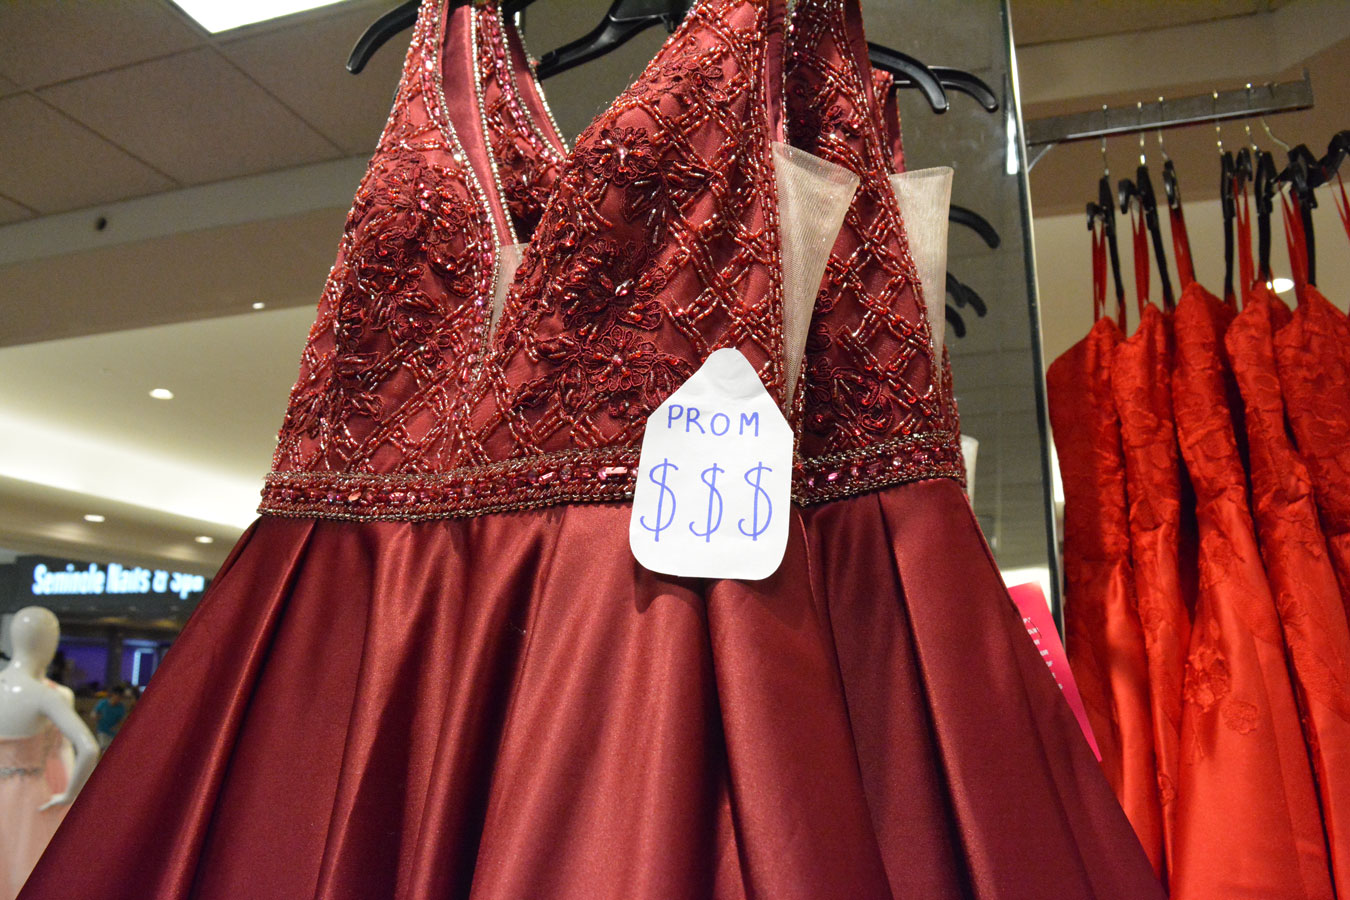 Prom is supposedly an unmissable part of being in high school, but is it worth the price?